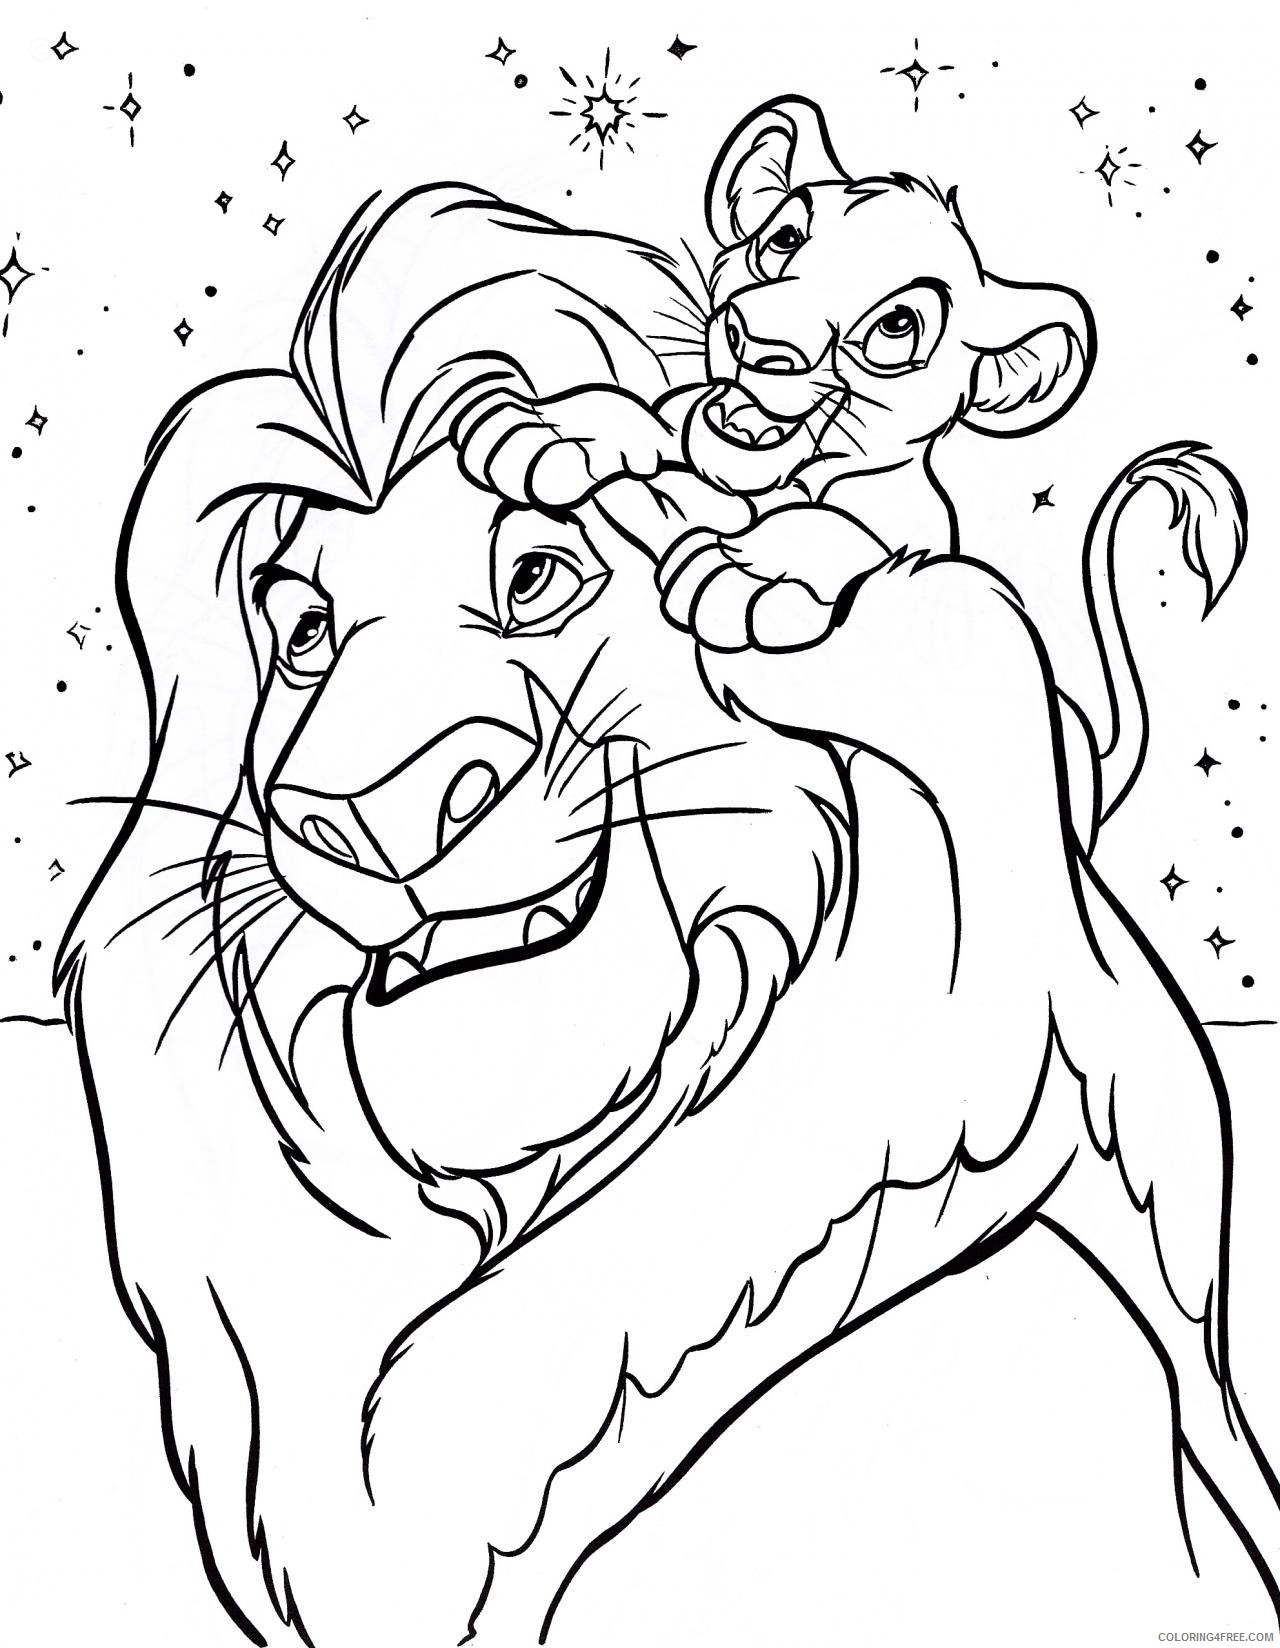 disney coloring pages the lion king Coloring4free